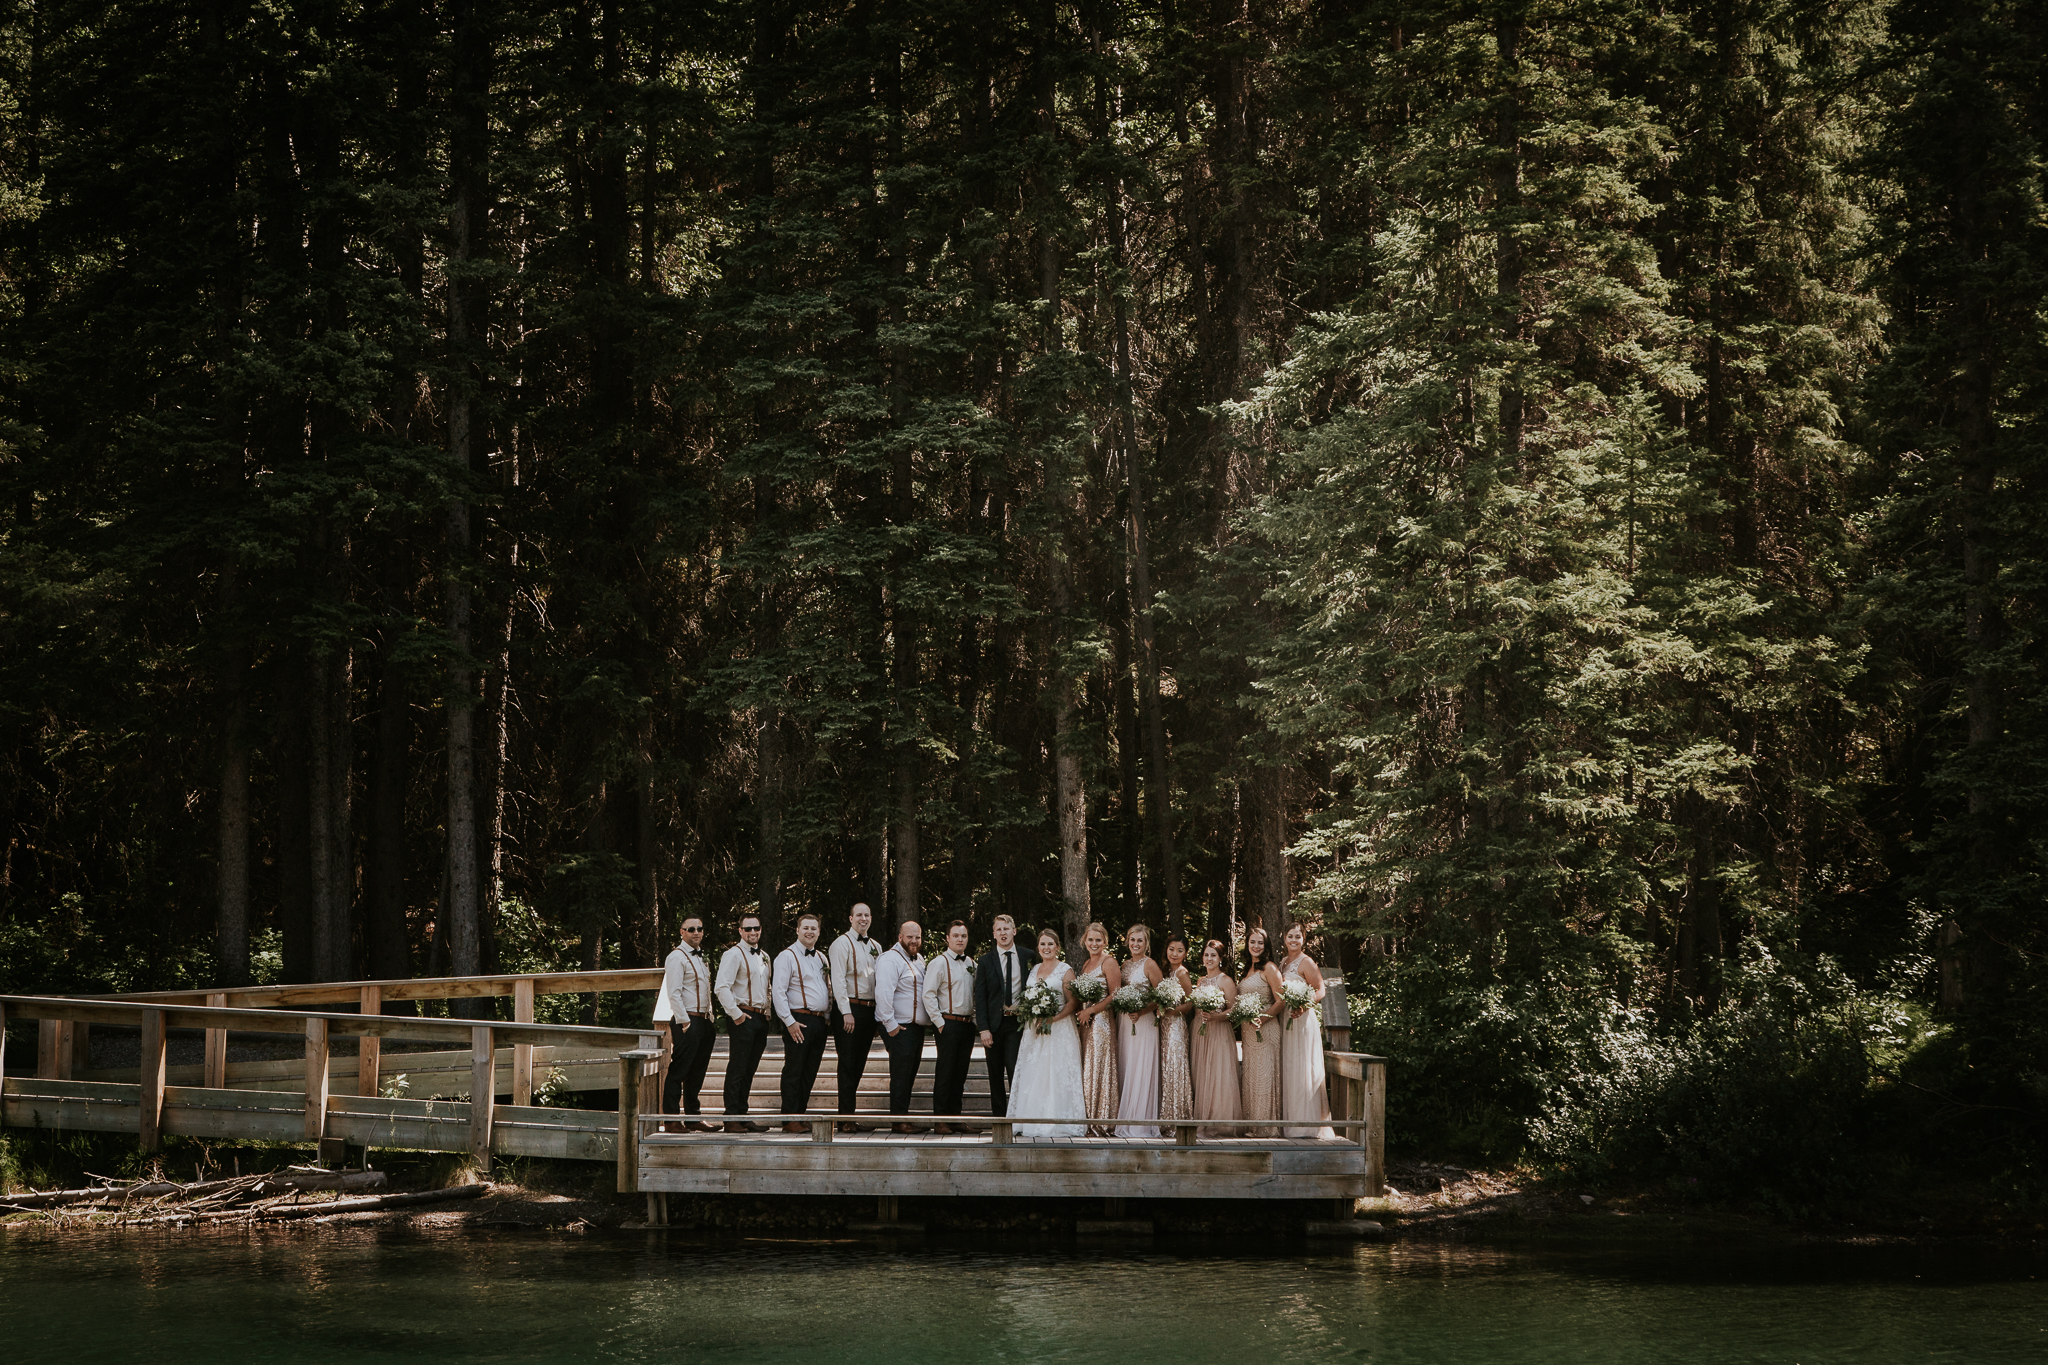 Bridal party portraits at Mount Lorette ponds Kananaskis